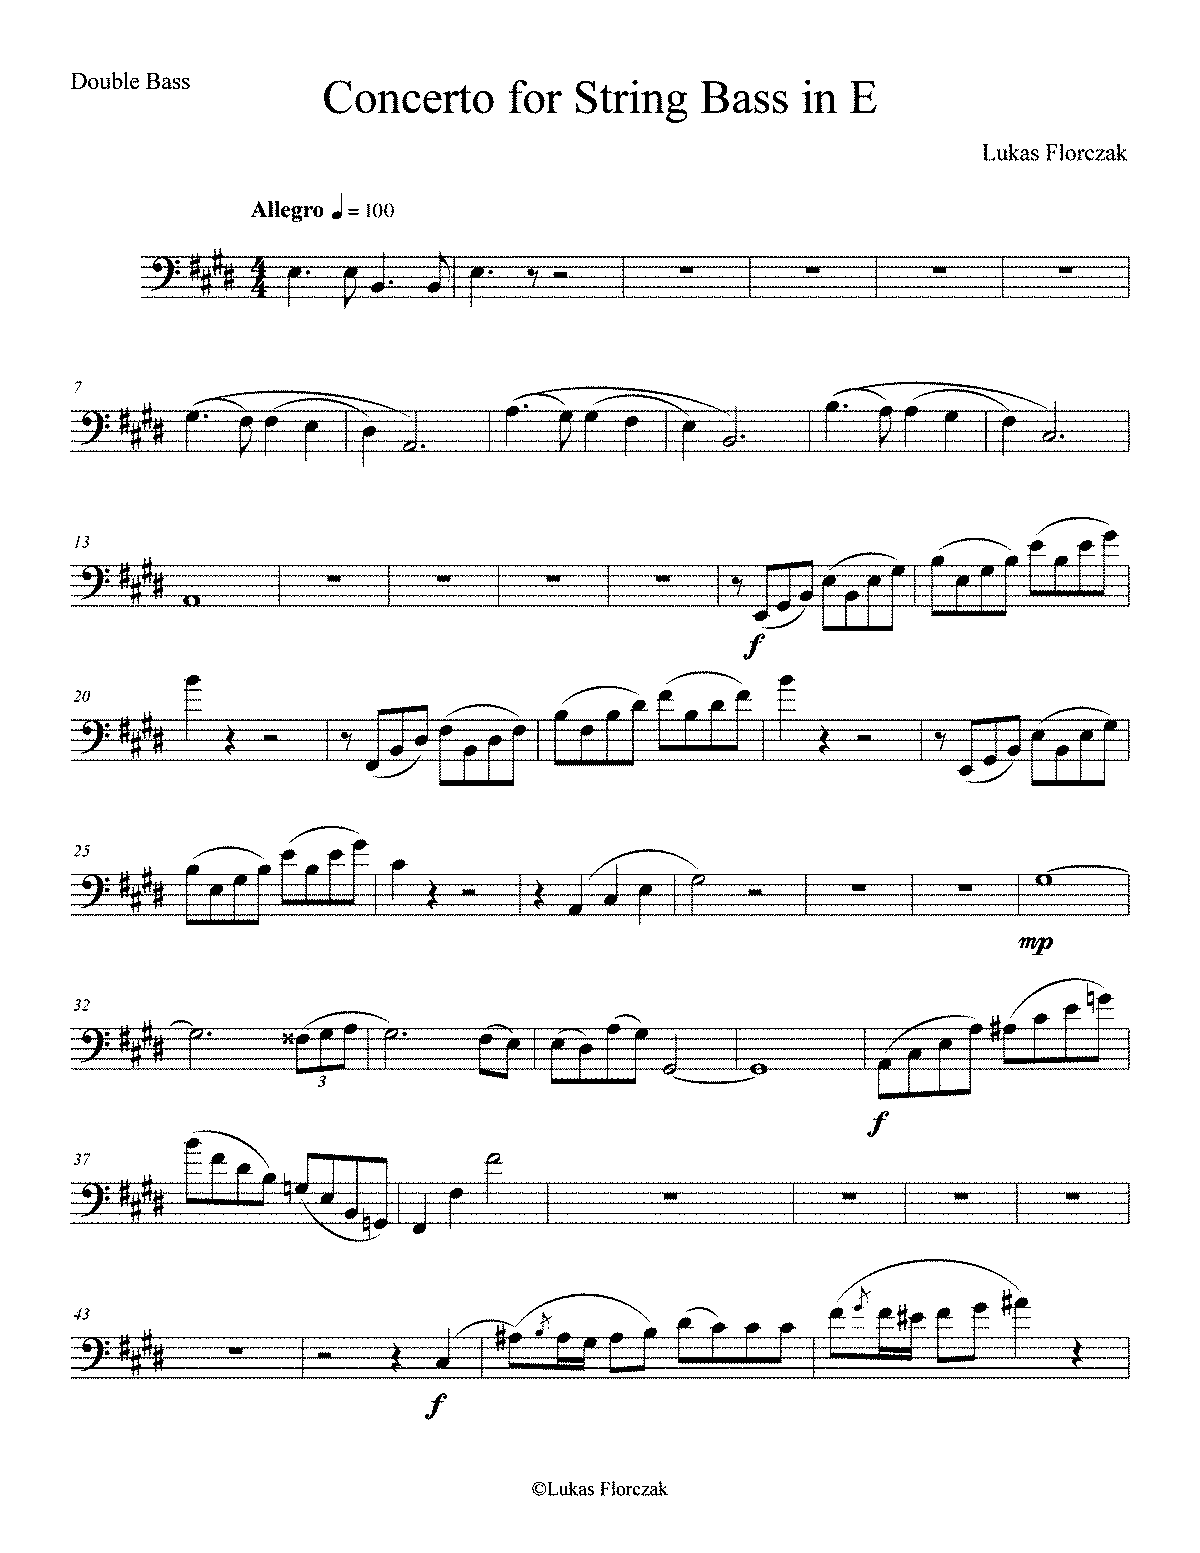 PMLP393820-Concerto for String Bass in E - Double Bass.pdf